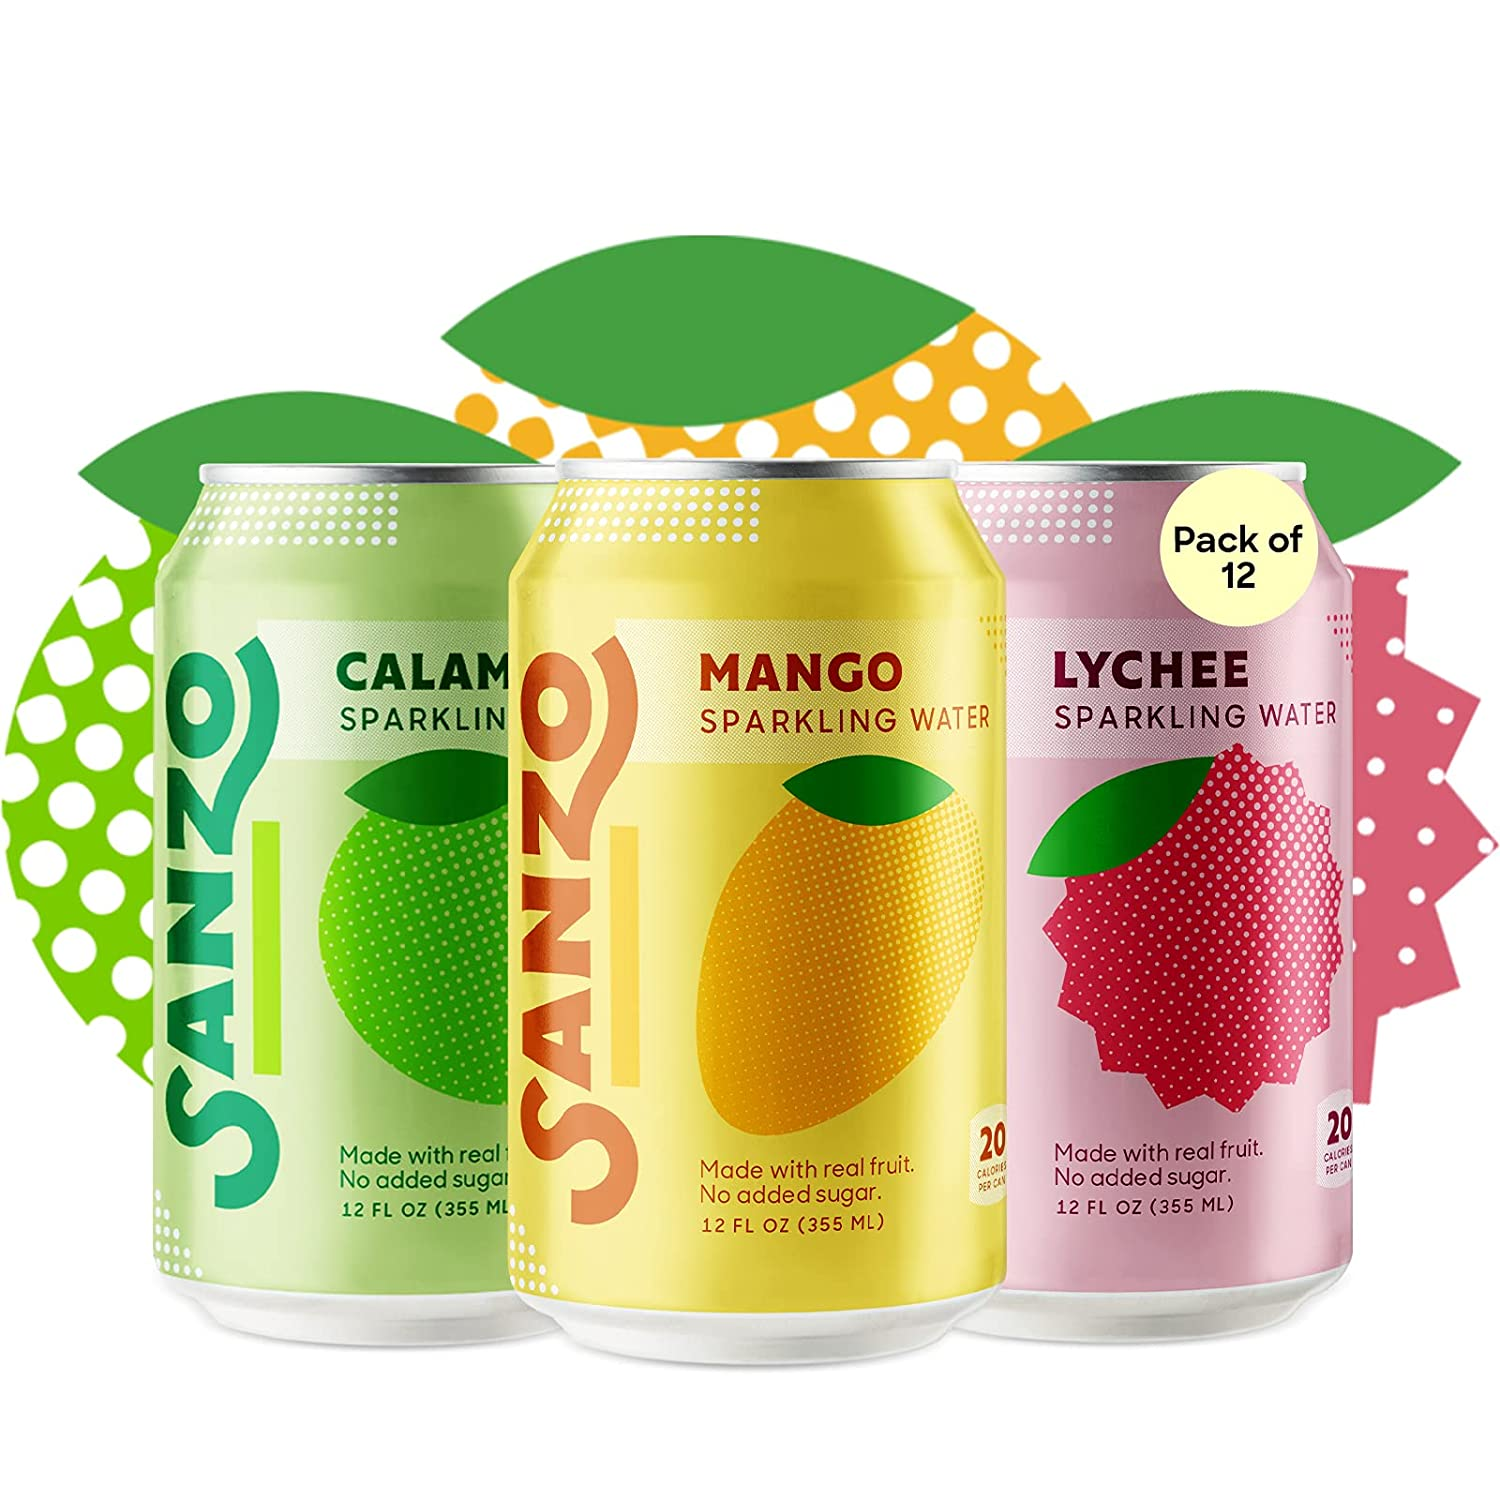 Sanzo Flavored Sparkling Water 2021 autumn and winter new Variety - New Free Shipping Pack Calamans 12-Pack